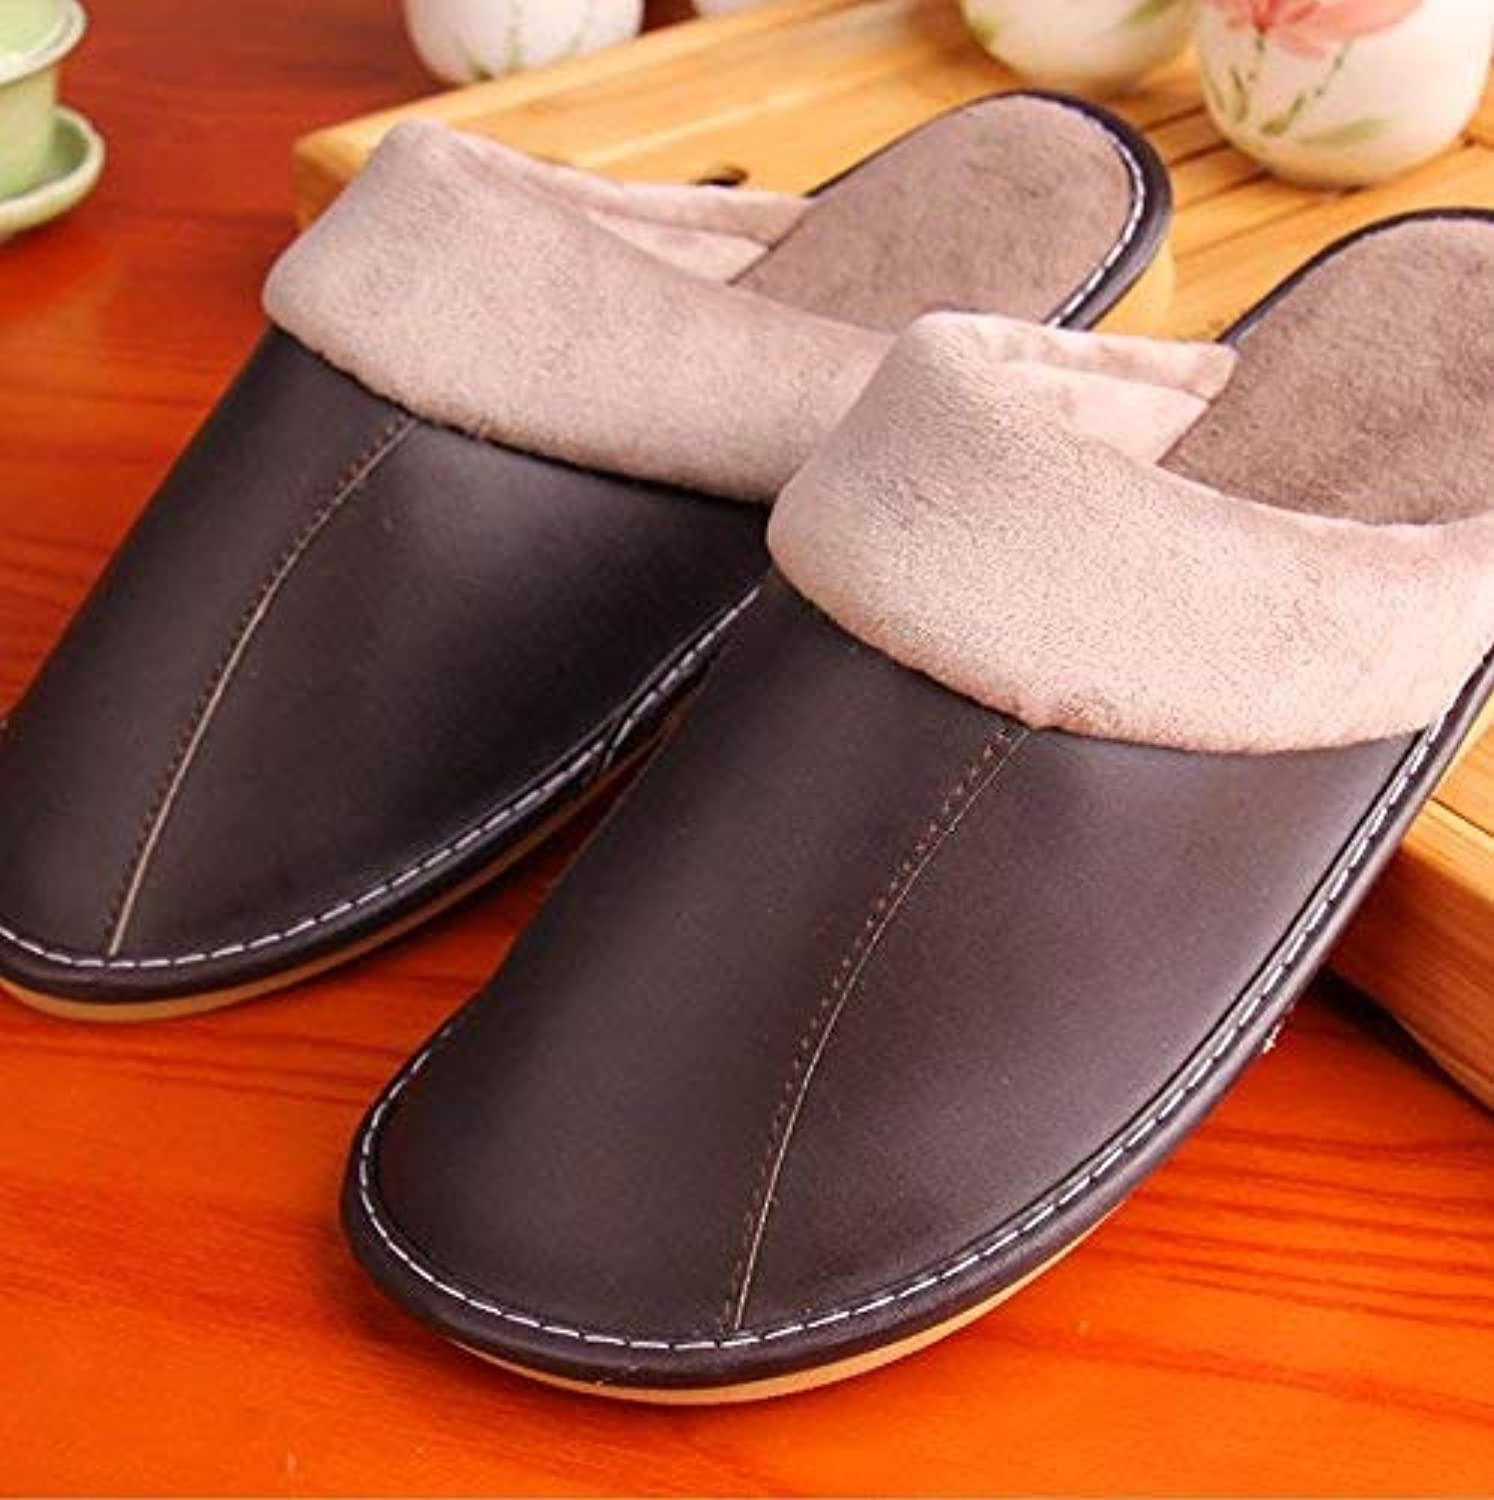 GouuoHi Men Slipper Men's Casual Cotton Slipper Indoor Slip in Autumn and Winter Warm Faux Leather Slippers Balck Brown for Men